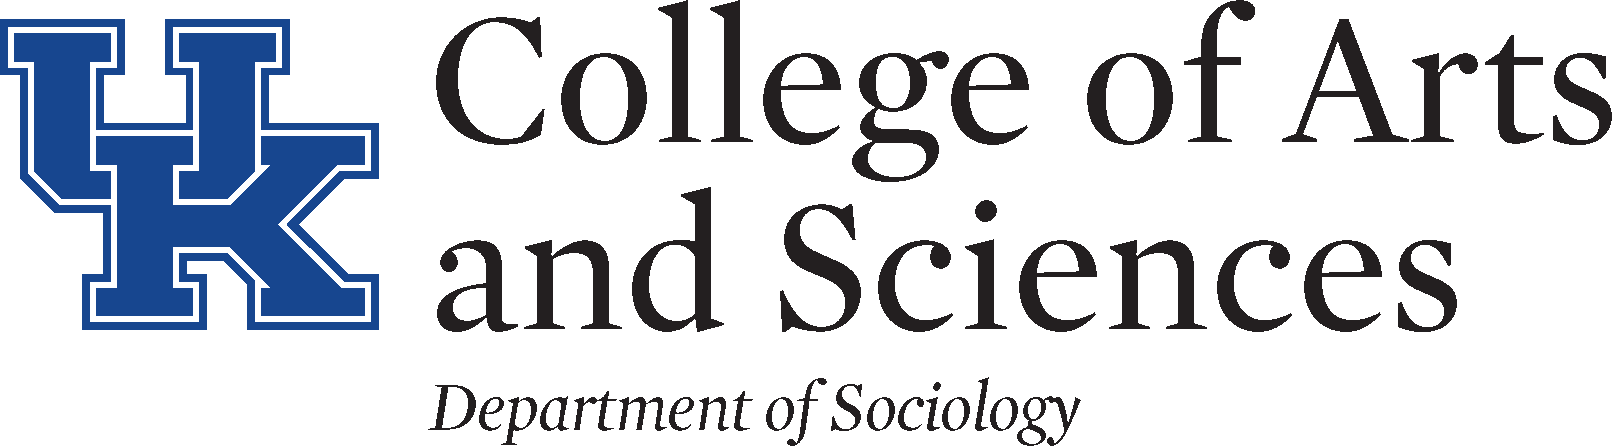 UK College of A&S - Department of Sociology Logo